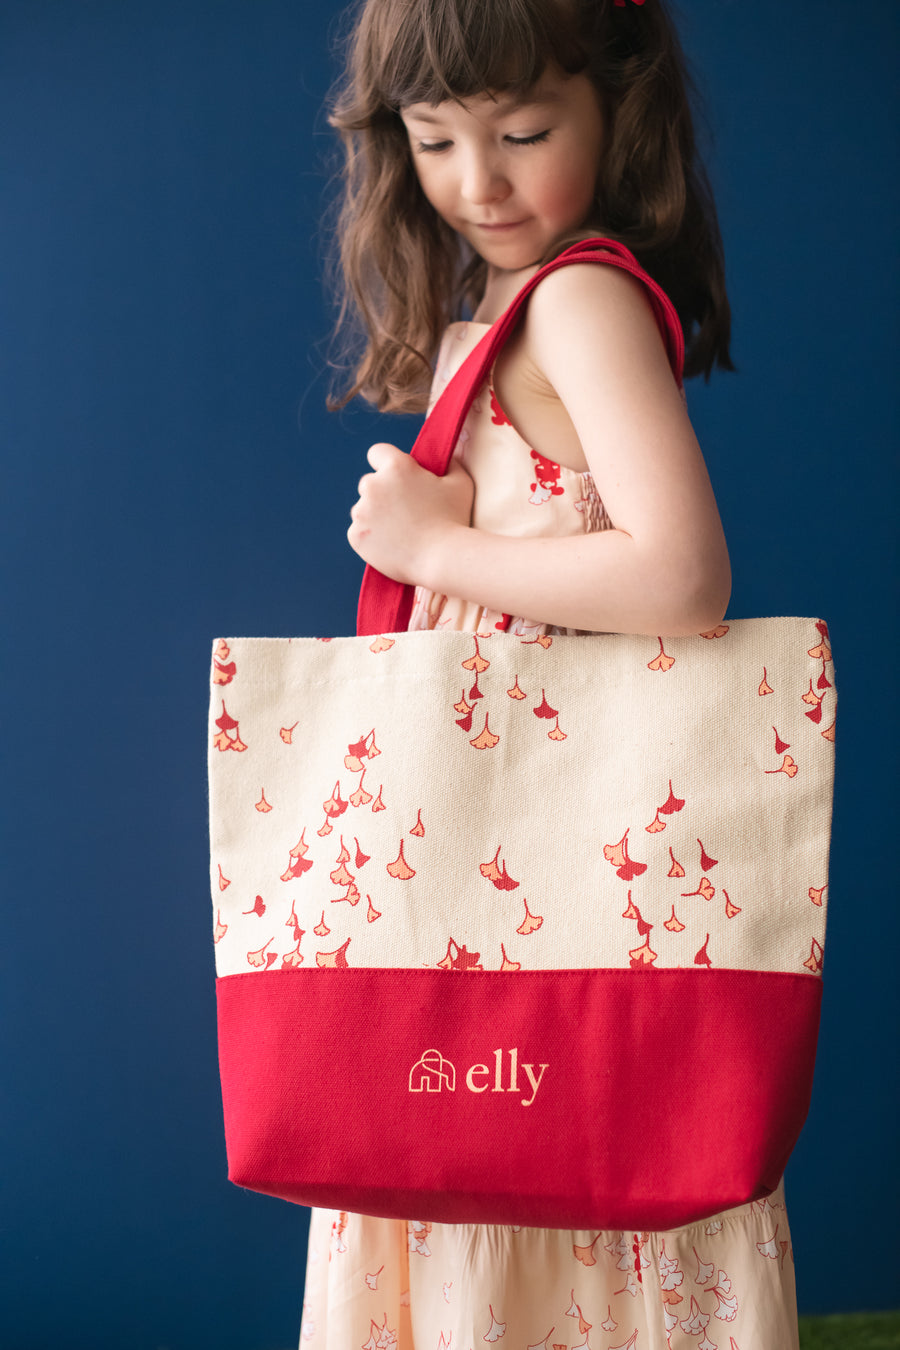 Elly Gingko Canvas Bag